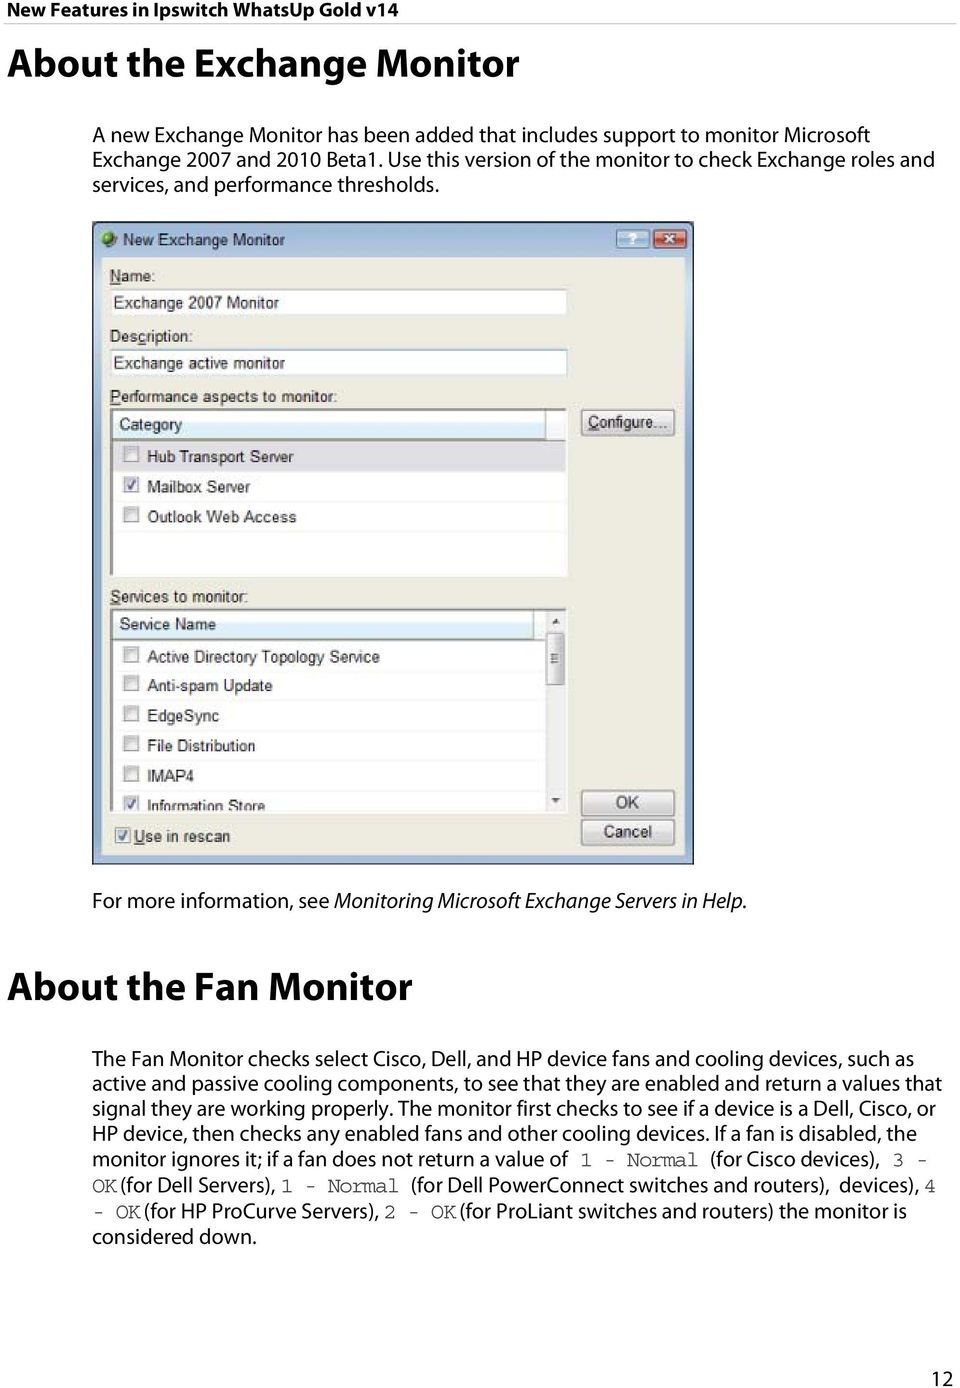 About the Fan Monitor The Fan Monitor checks select Cisco, Dell, and HP device fans and cooling devices, such as active and passive cooling components, to see that they are enabled and return a